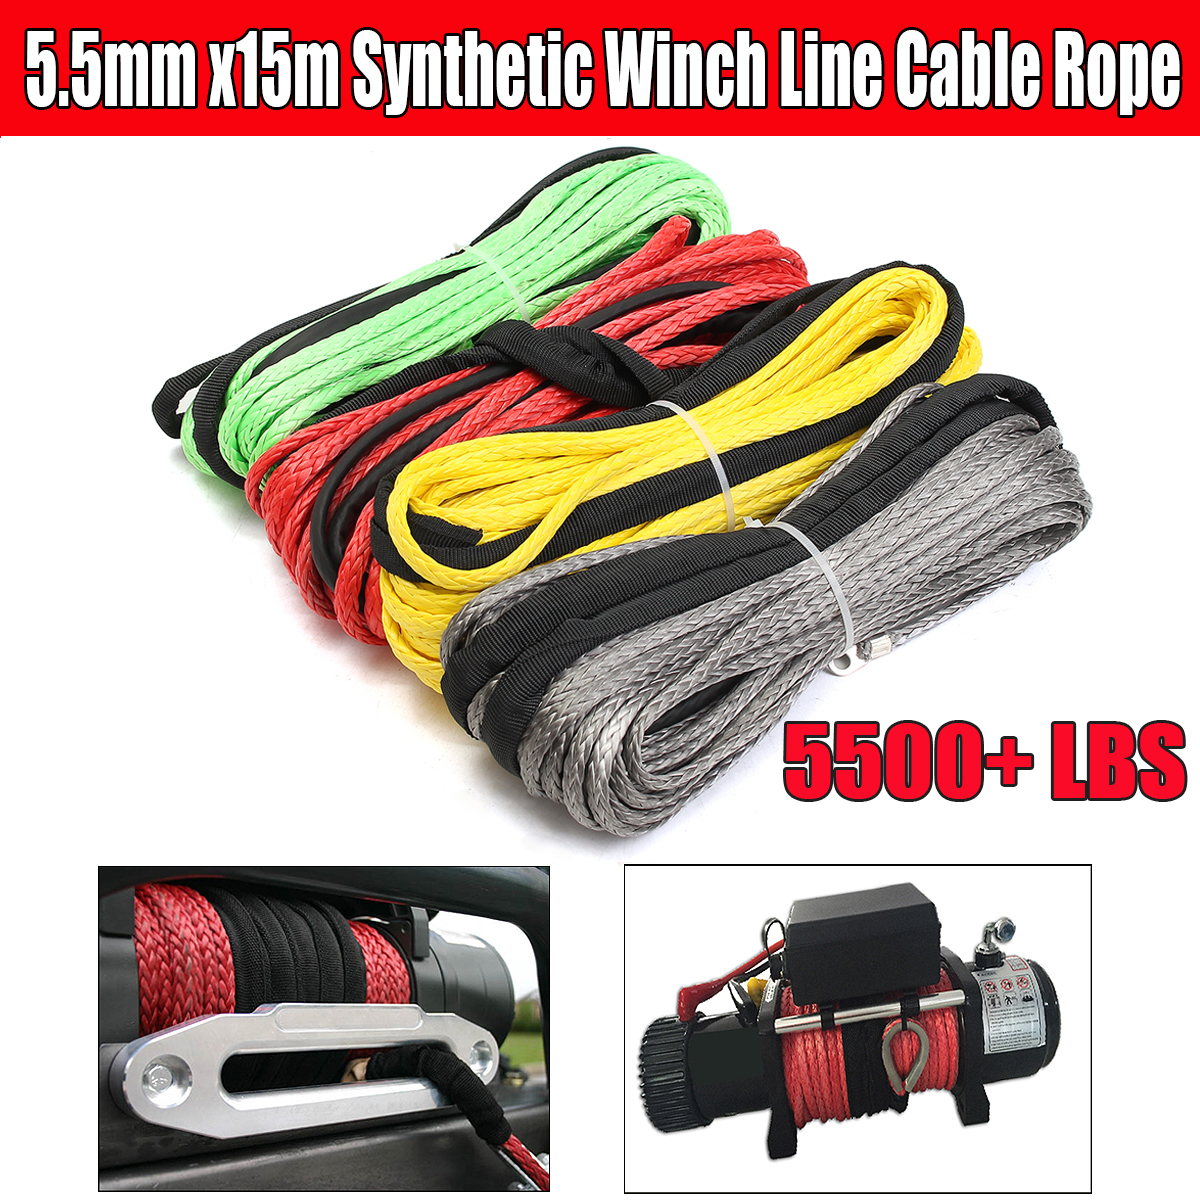 Winch-Line Cable-Rope Synthetic-Fiber 5500 UTV Lbs Sheath for ATV 3/16''-X-50' title=